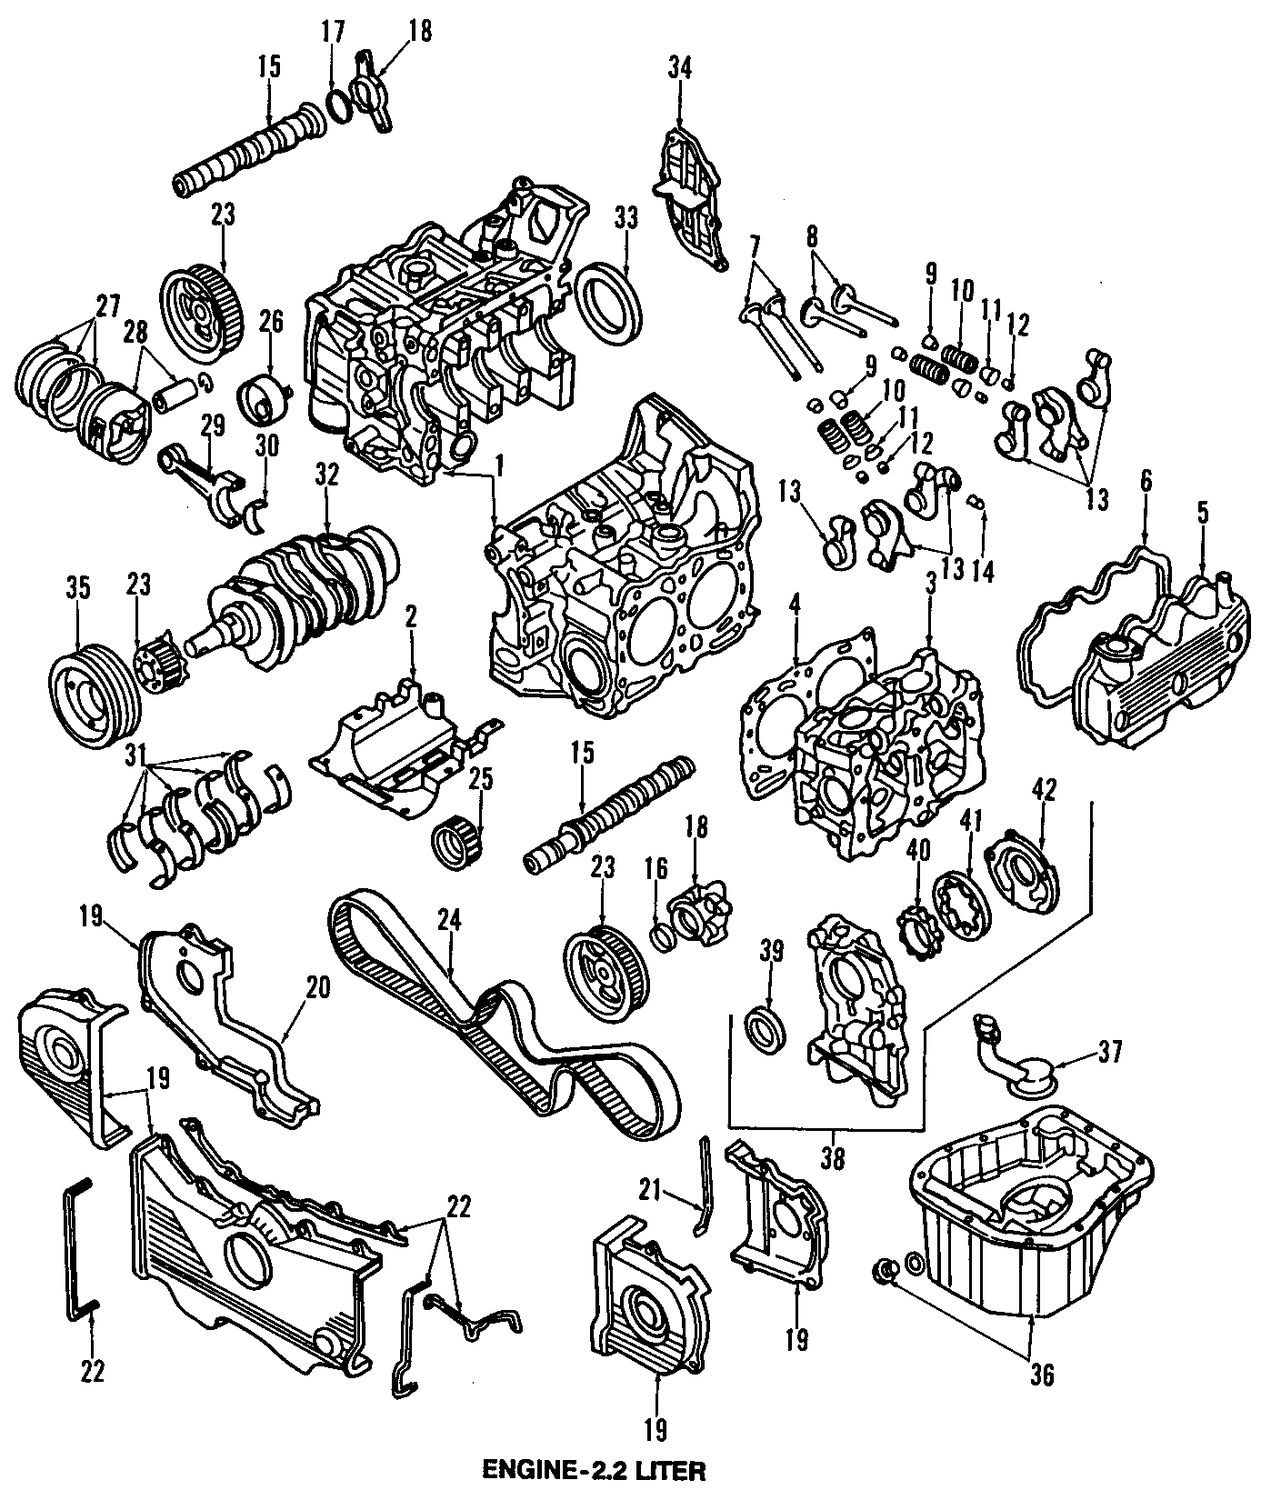 hight resolution of subaru motor diagram electrical wiring diagrams rh 21 lowrysdriedmeat de 2015 wrx engine diagram subaru engine